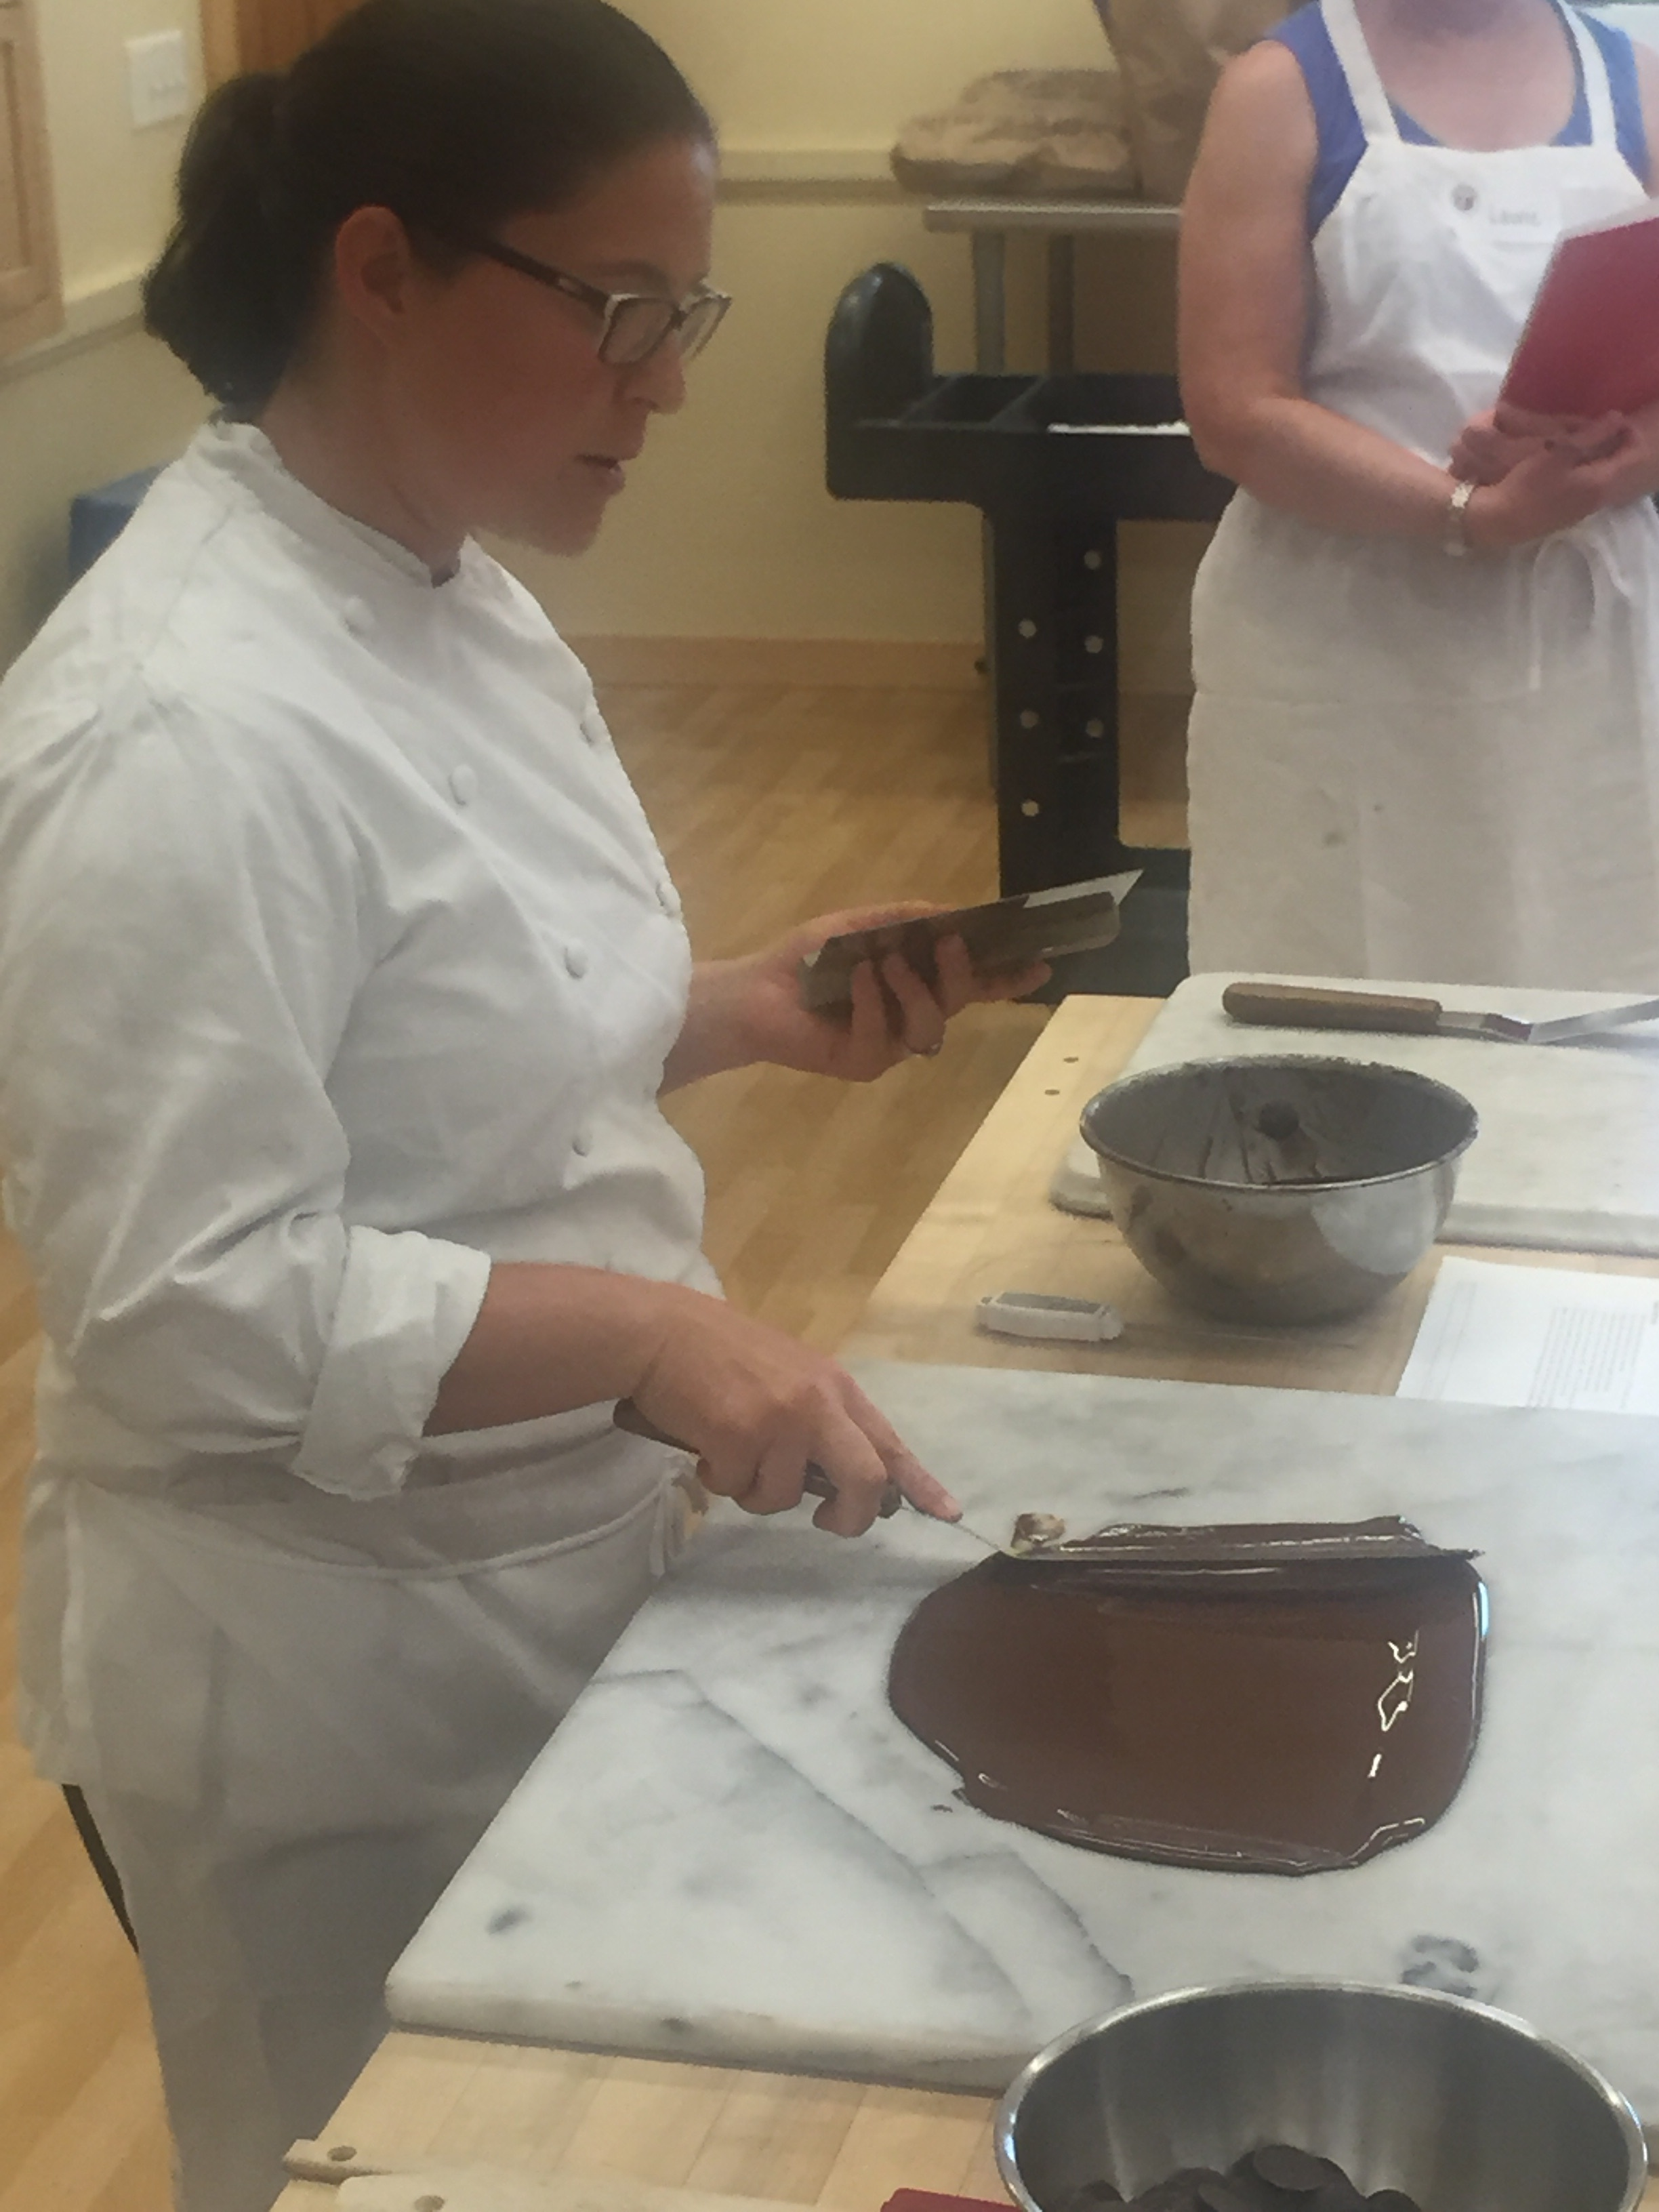 Our instructor, Melanie, tempering chocolate via the table method.